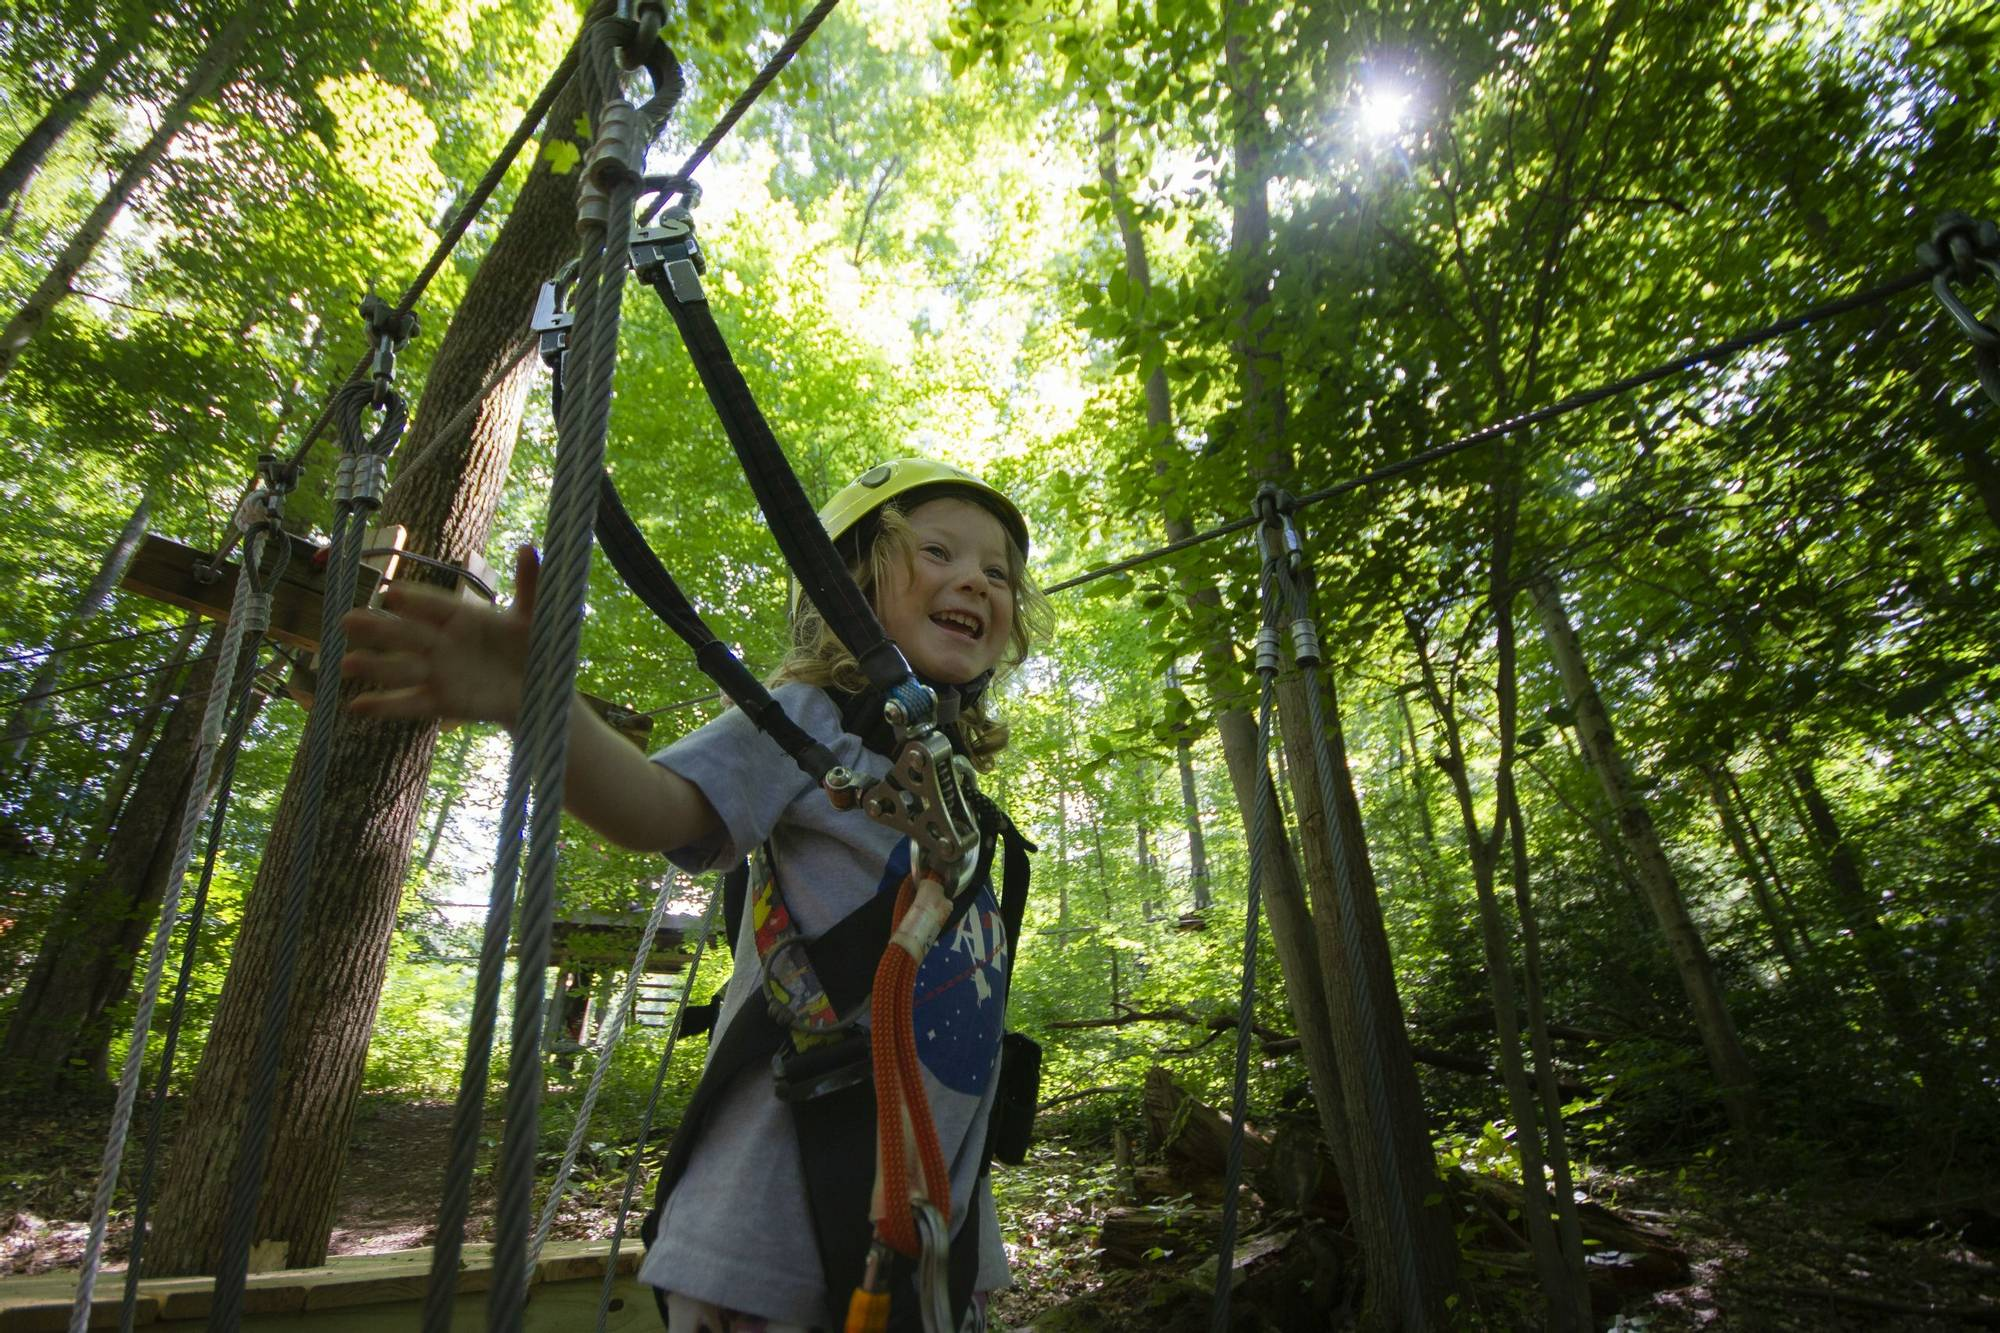 Adventures on the Gorge adventure vacation